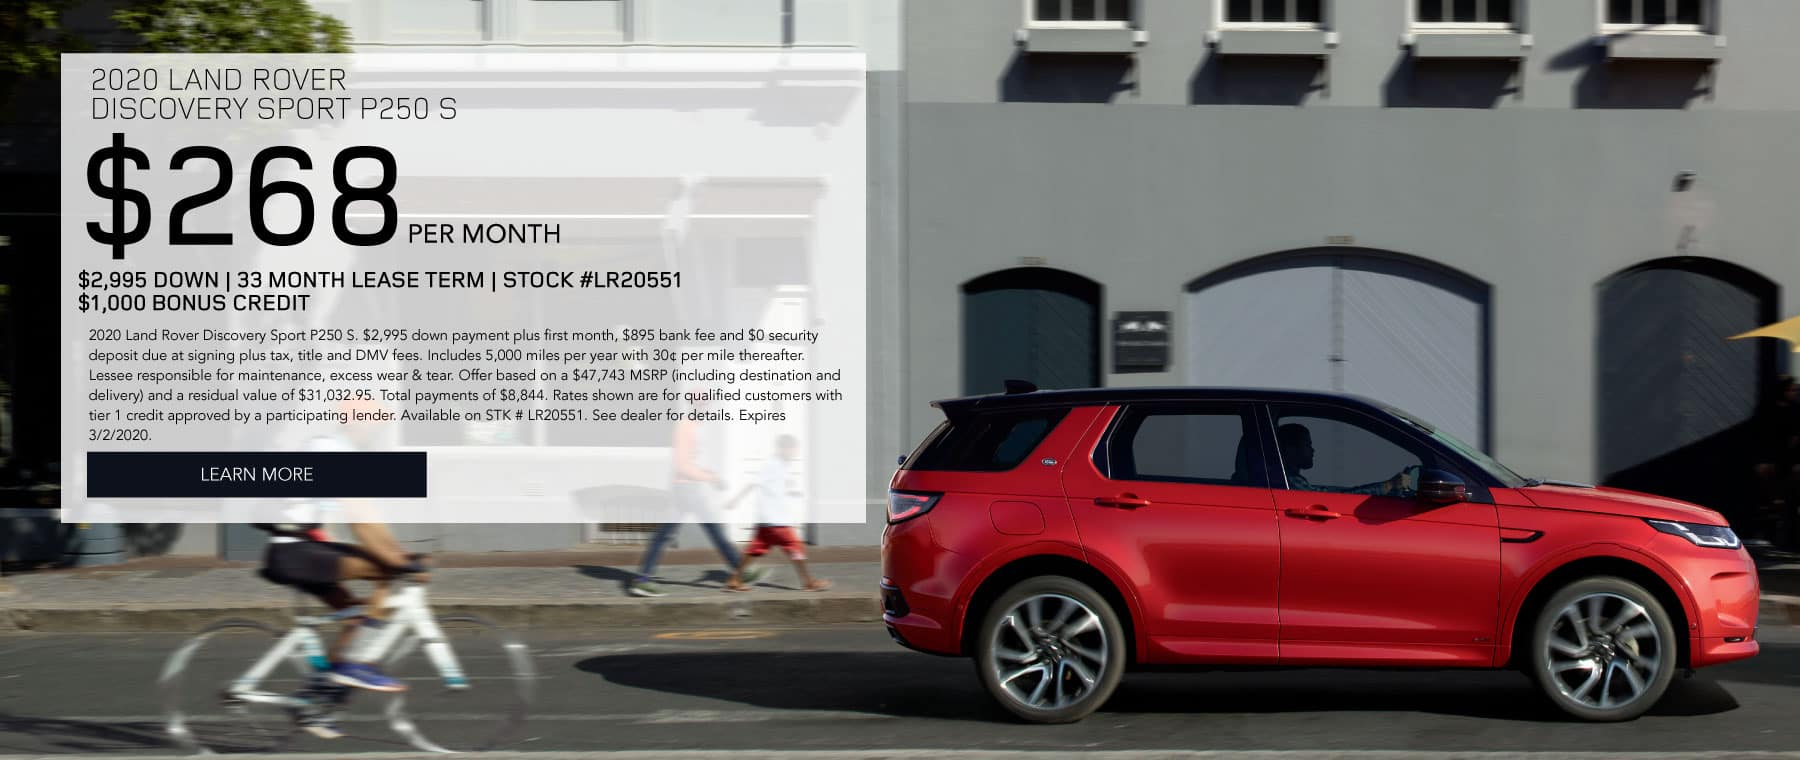 2020 LAND ROVER DISCOVERY SPORT P250 S. $268 oer month. $2995 down. 33 month lease term. Stock #LR20551. $1000 bonus credit.  2020 Land Rover Discovery Sport P250 S. $2,995 down payment plus first month, $895 bank fee and $0 security deposit due at signing plus tax, title and DMV fees. Includes 5,000 miles per year with 30¢ per mile thereafter. Lessee responsible for maintenance, excess wear & tear. Offer based on a $47,743 MSRP (including destination and delivery) and a residual value of $31,032.95. Total payments of $8,844. Rates shown are for qualified customers with tier 1 credit approved by a participating lender. Available on STK # LR20551. See dealer for details. Expires 3/2/2020. Click to learn more. Red Discovery Sport driving through city.